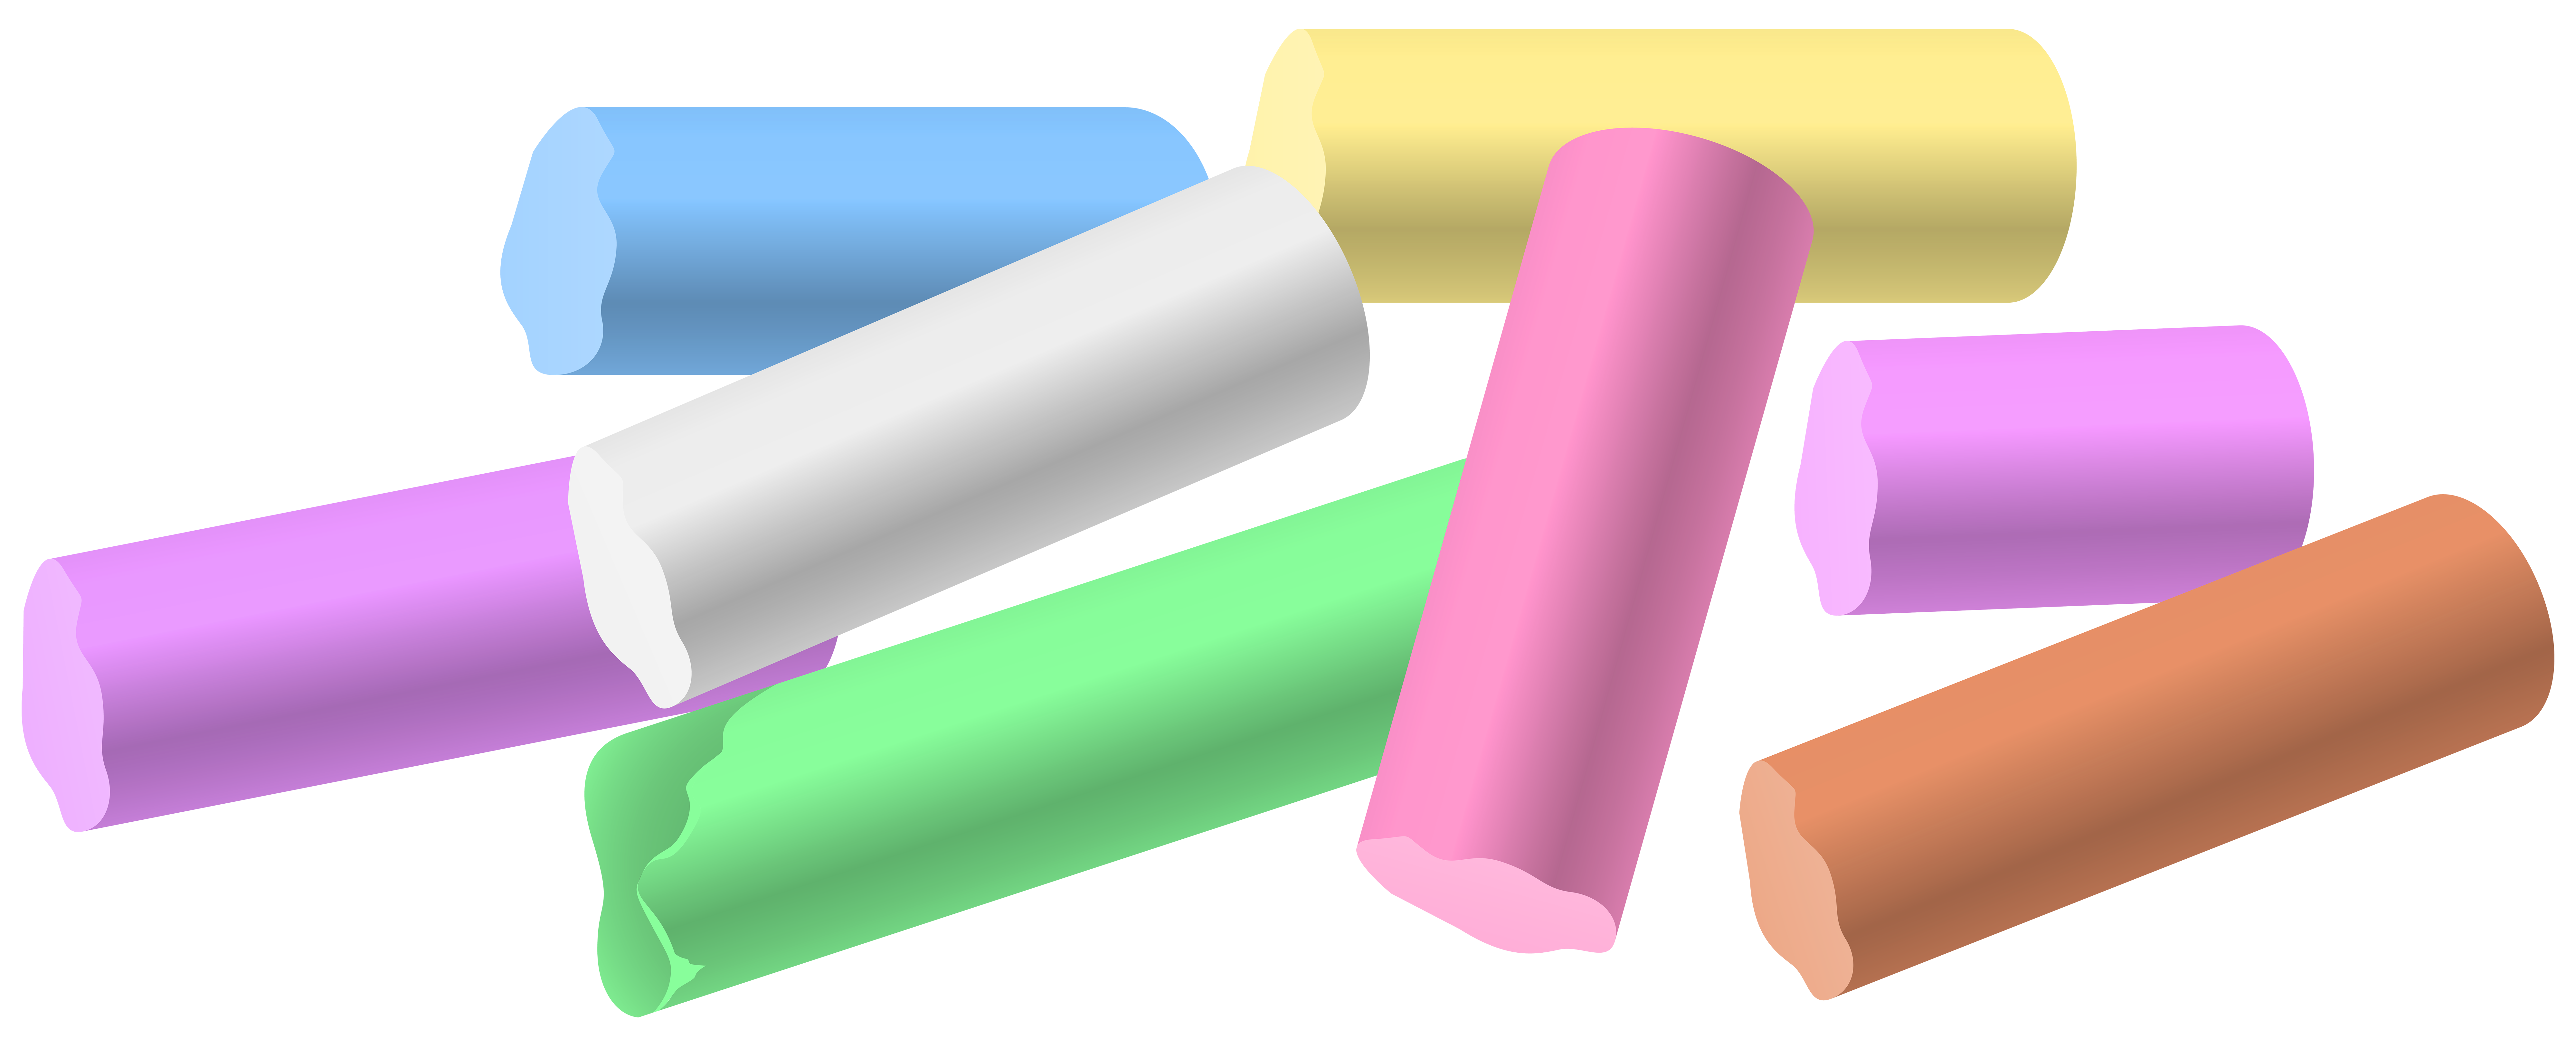 chalk clipart at getdrawings com free for personal use chalk rh getdrawings com chalkboard clipart free download free chalkboard clipart images